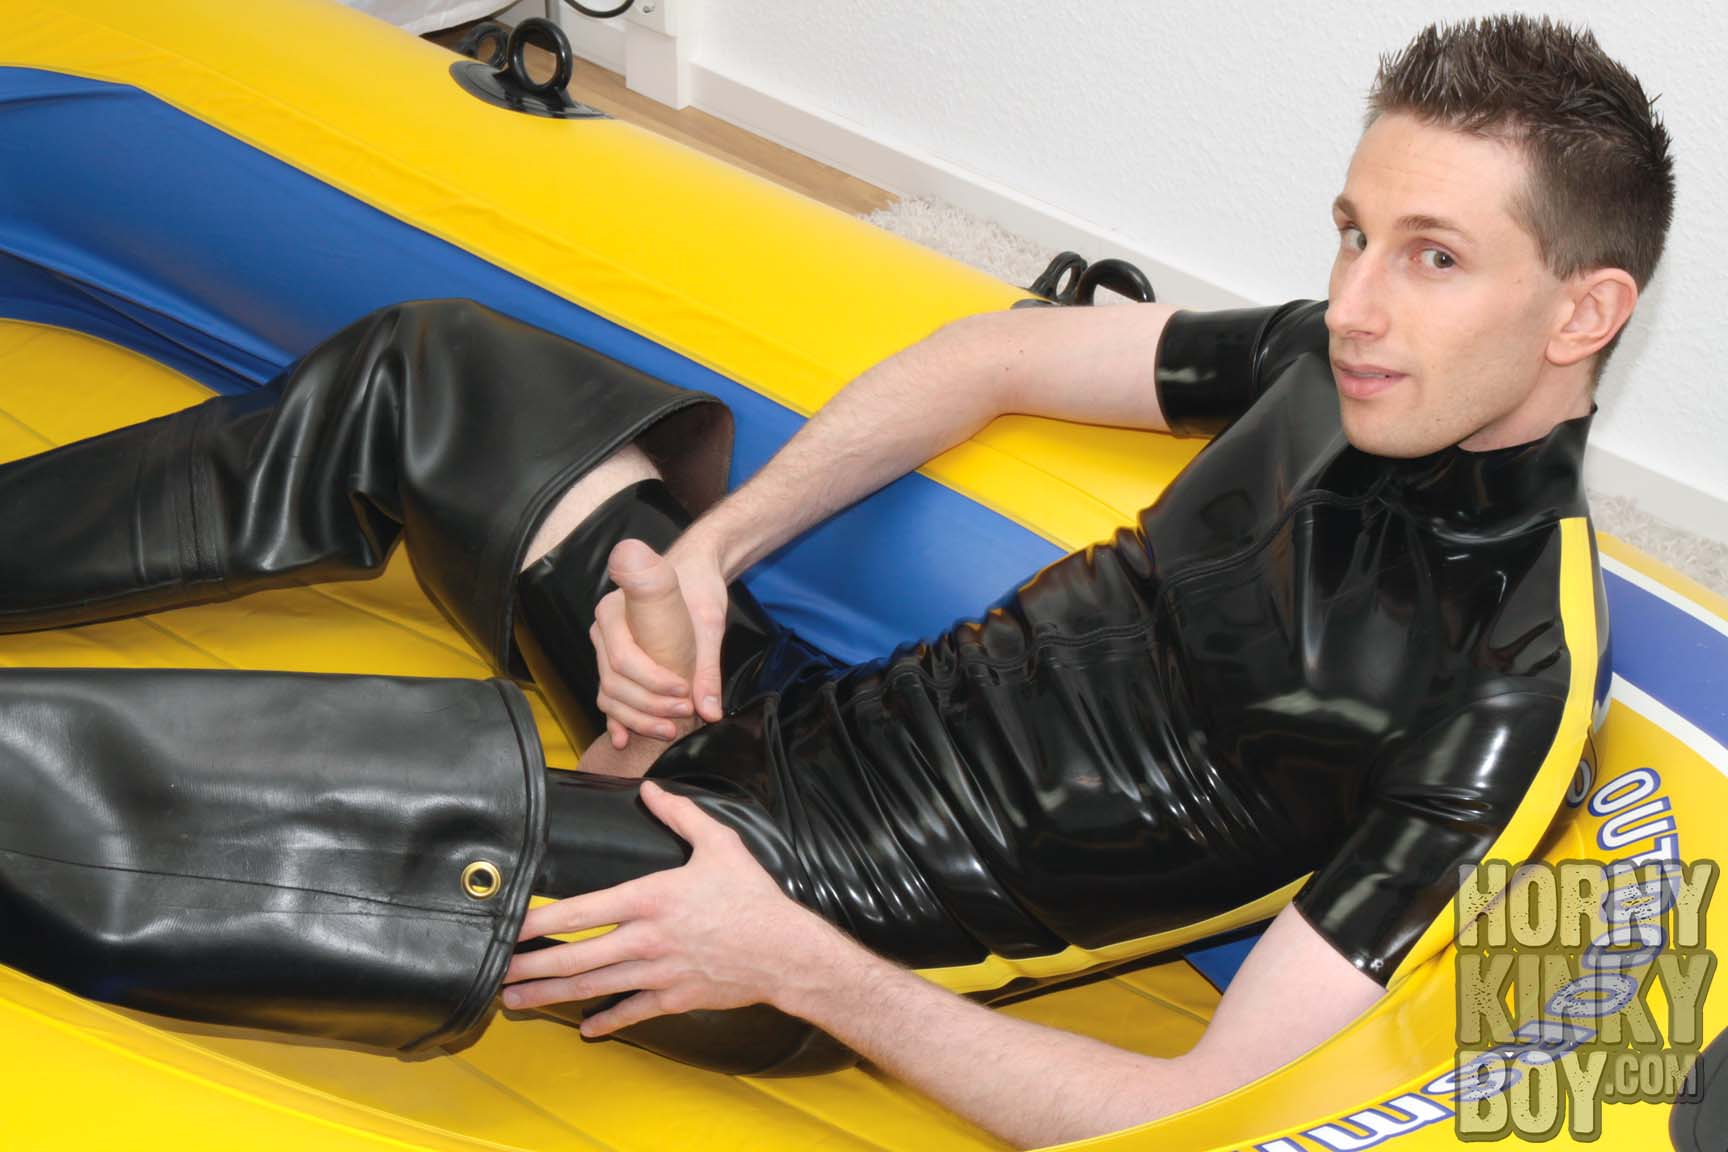 Fetish Photo Shooting In Rubber Shorty And Waders